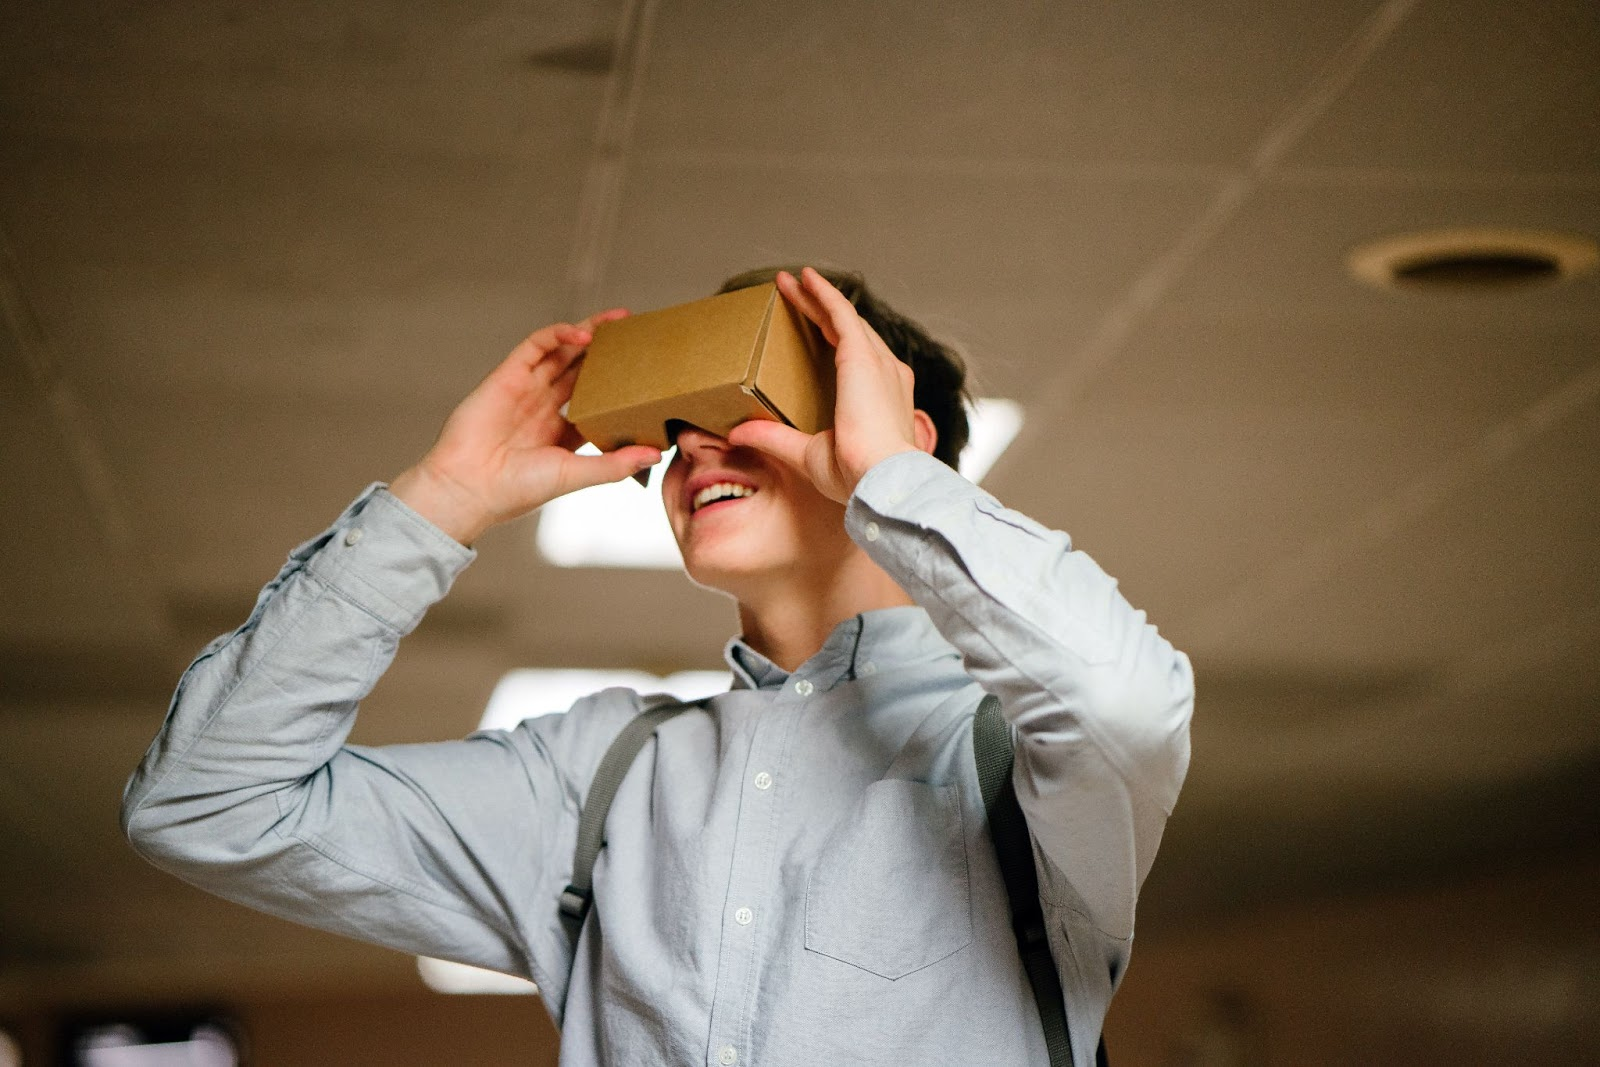 Young boy holds up a virtual reality cardboard headset to his eyes.